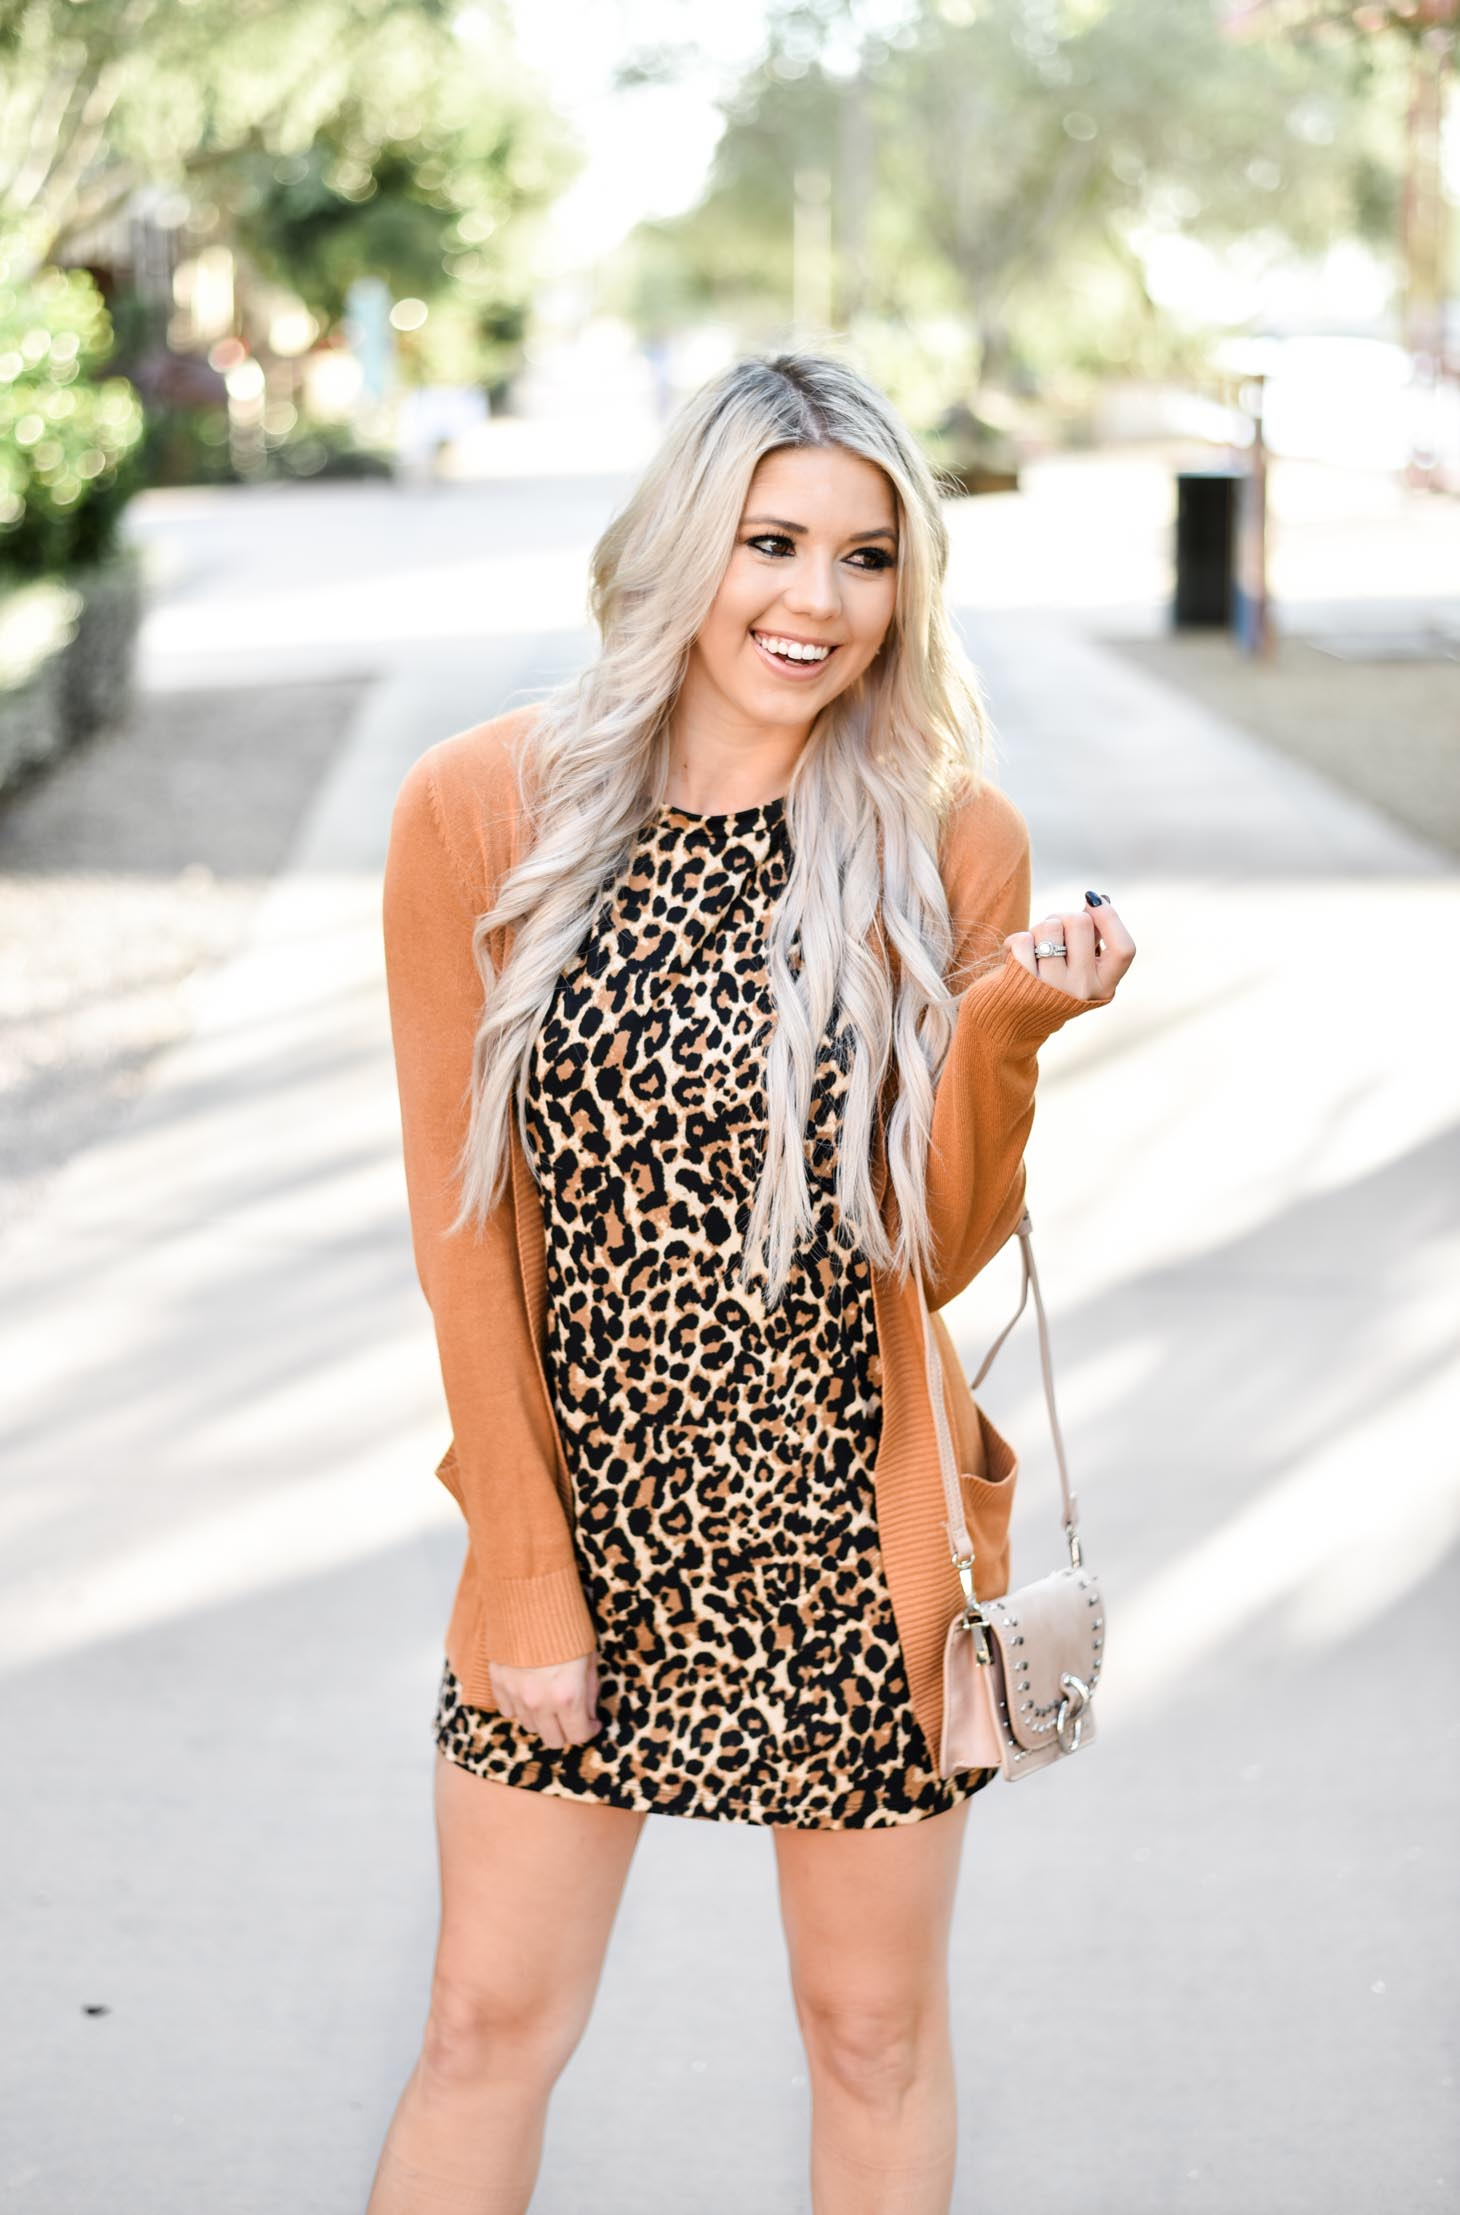 Erin Elizabeth of Wink and a Twirl shares the perfect leopard dress and cardigan from Pink Lily Boutique